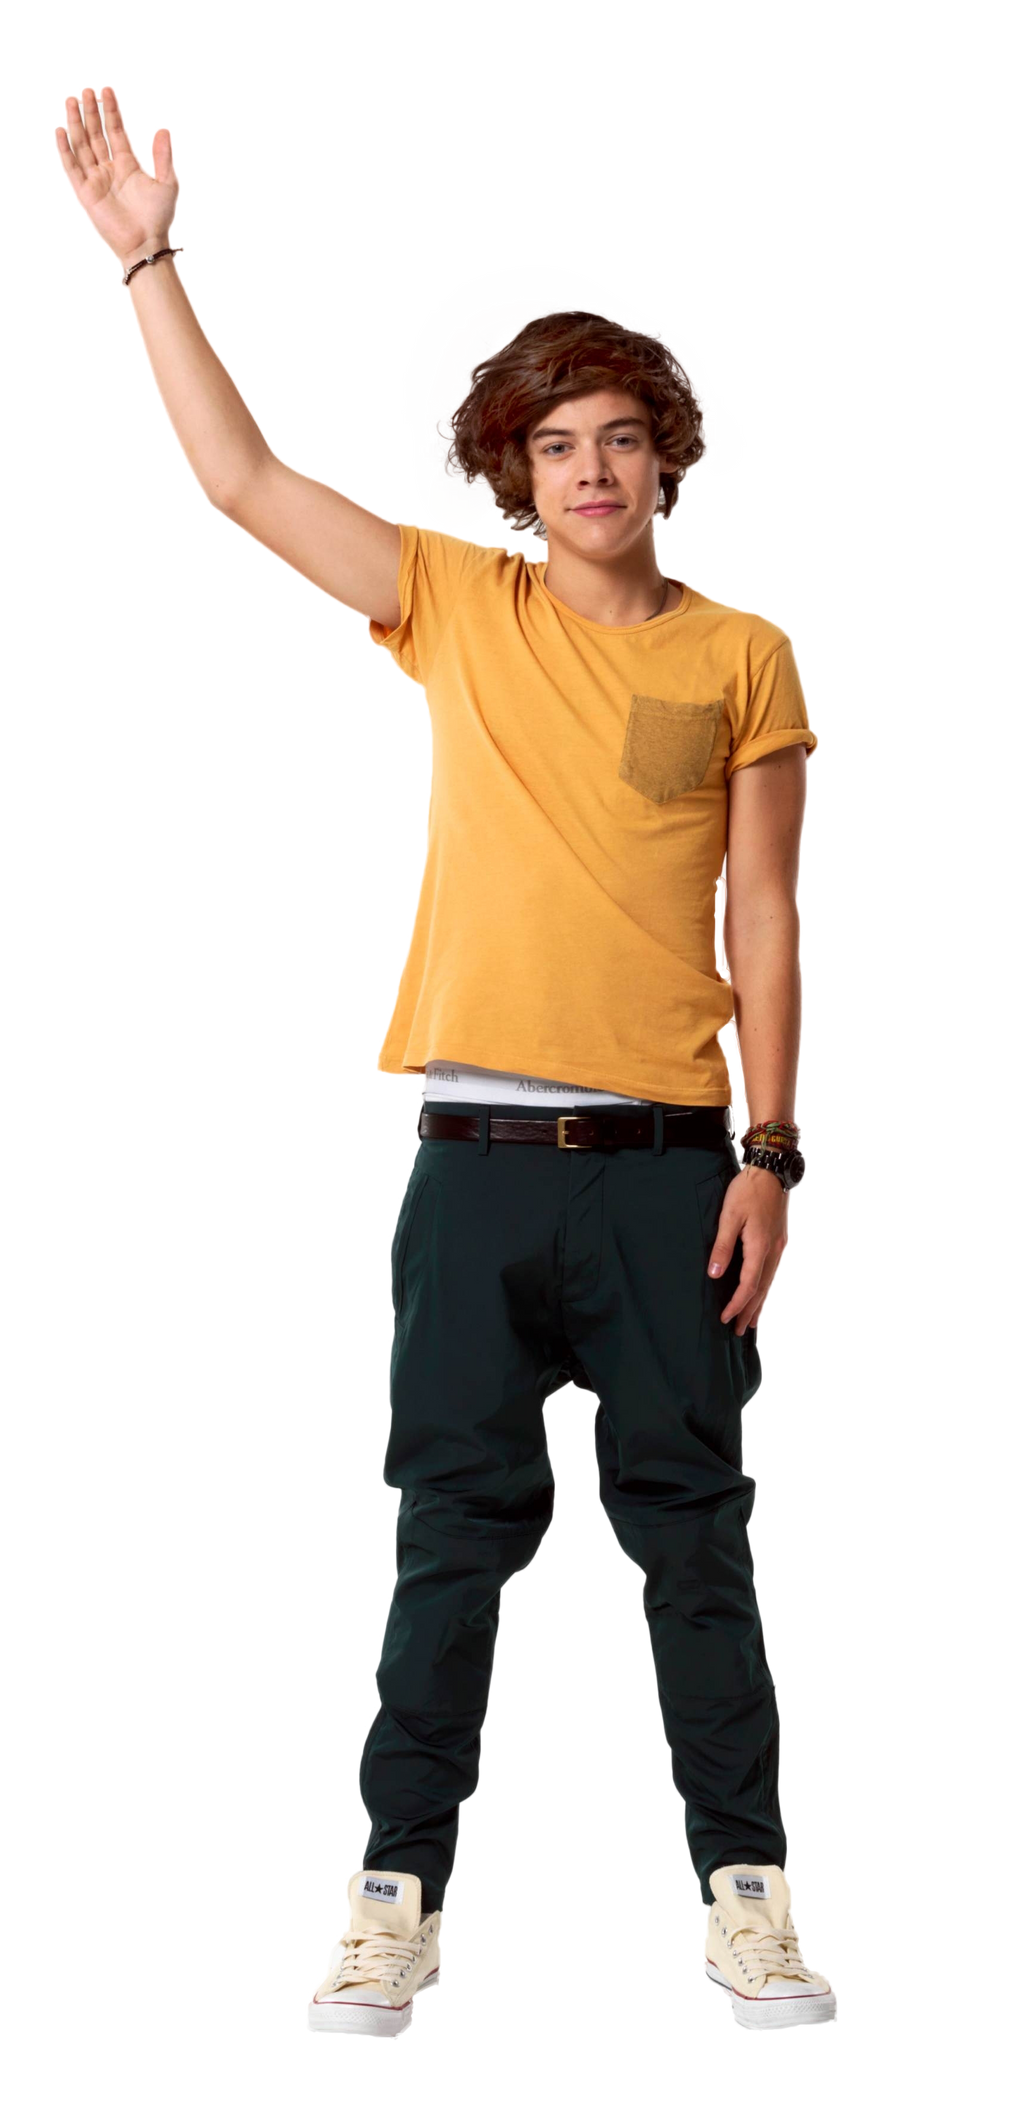 harry styles png 6 by tectos on deviantart